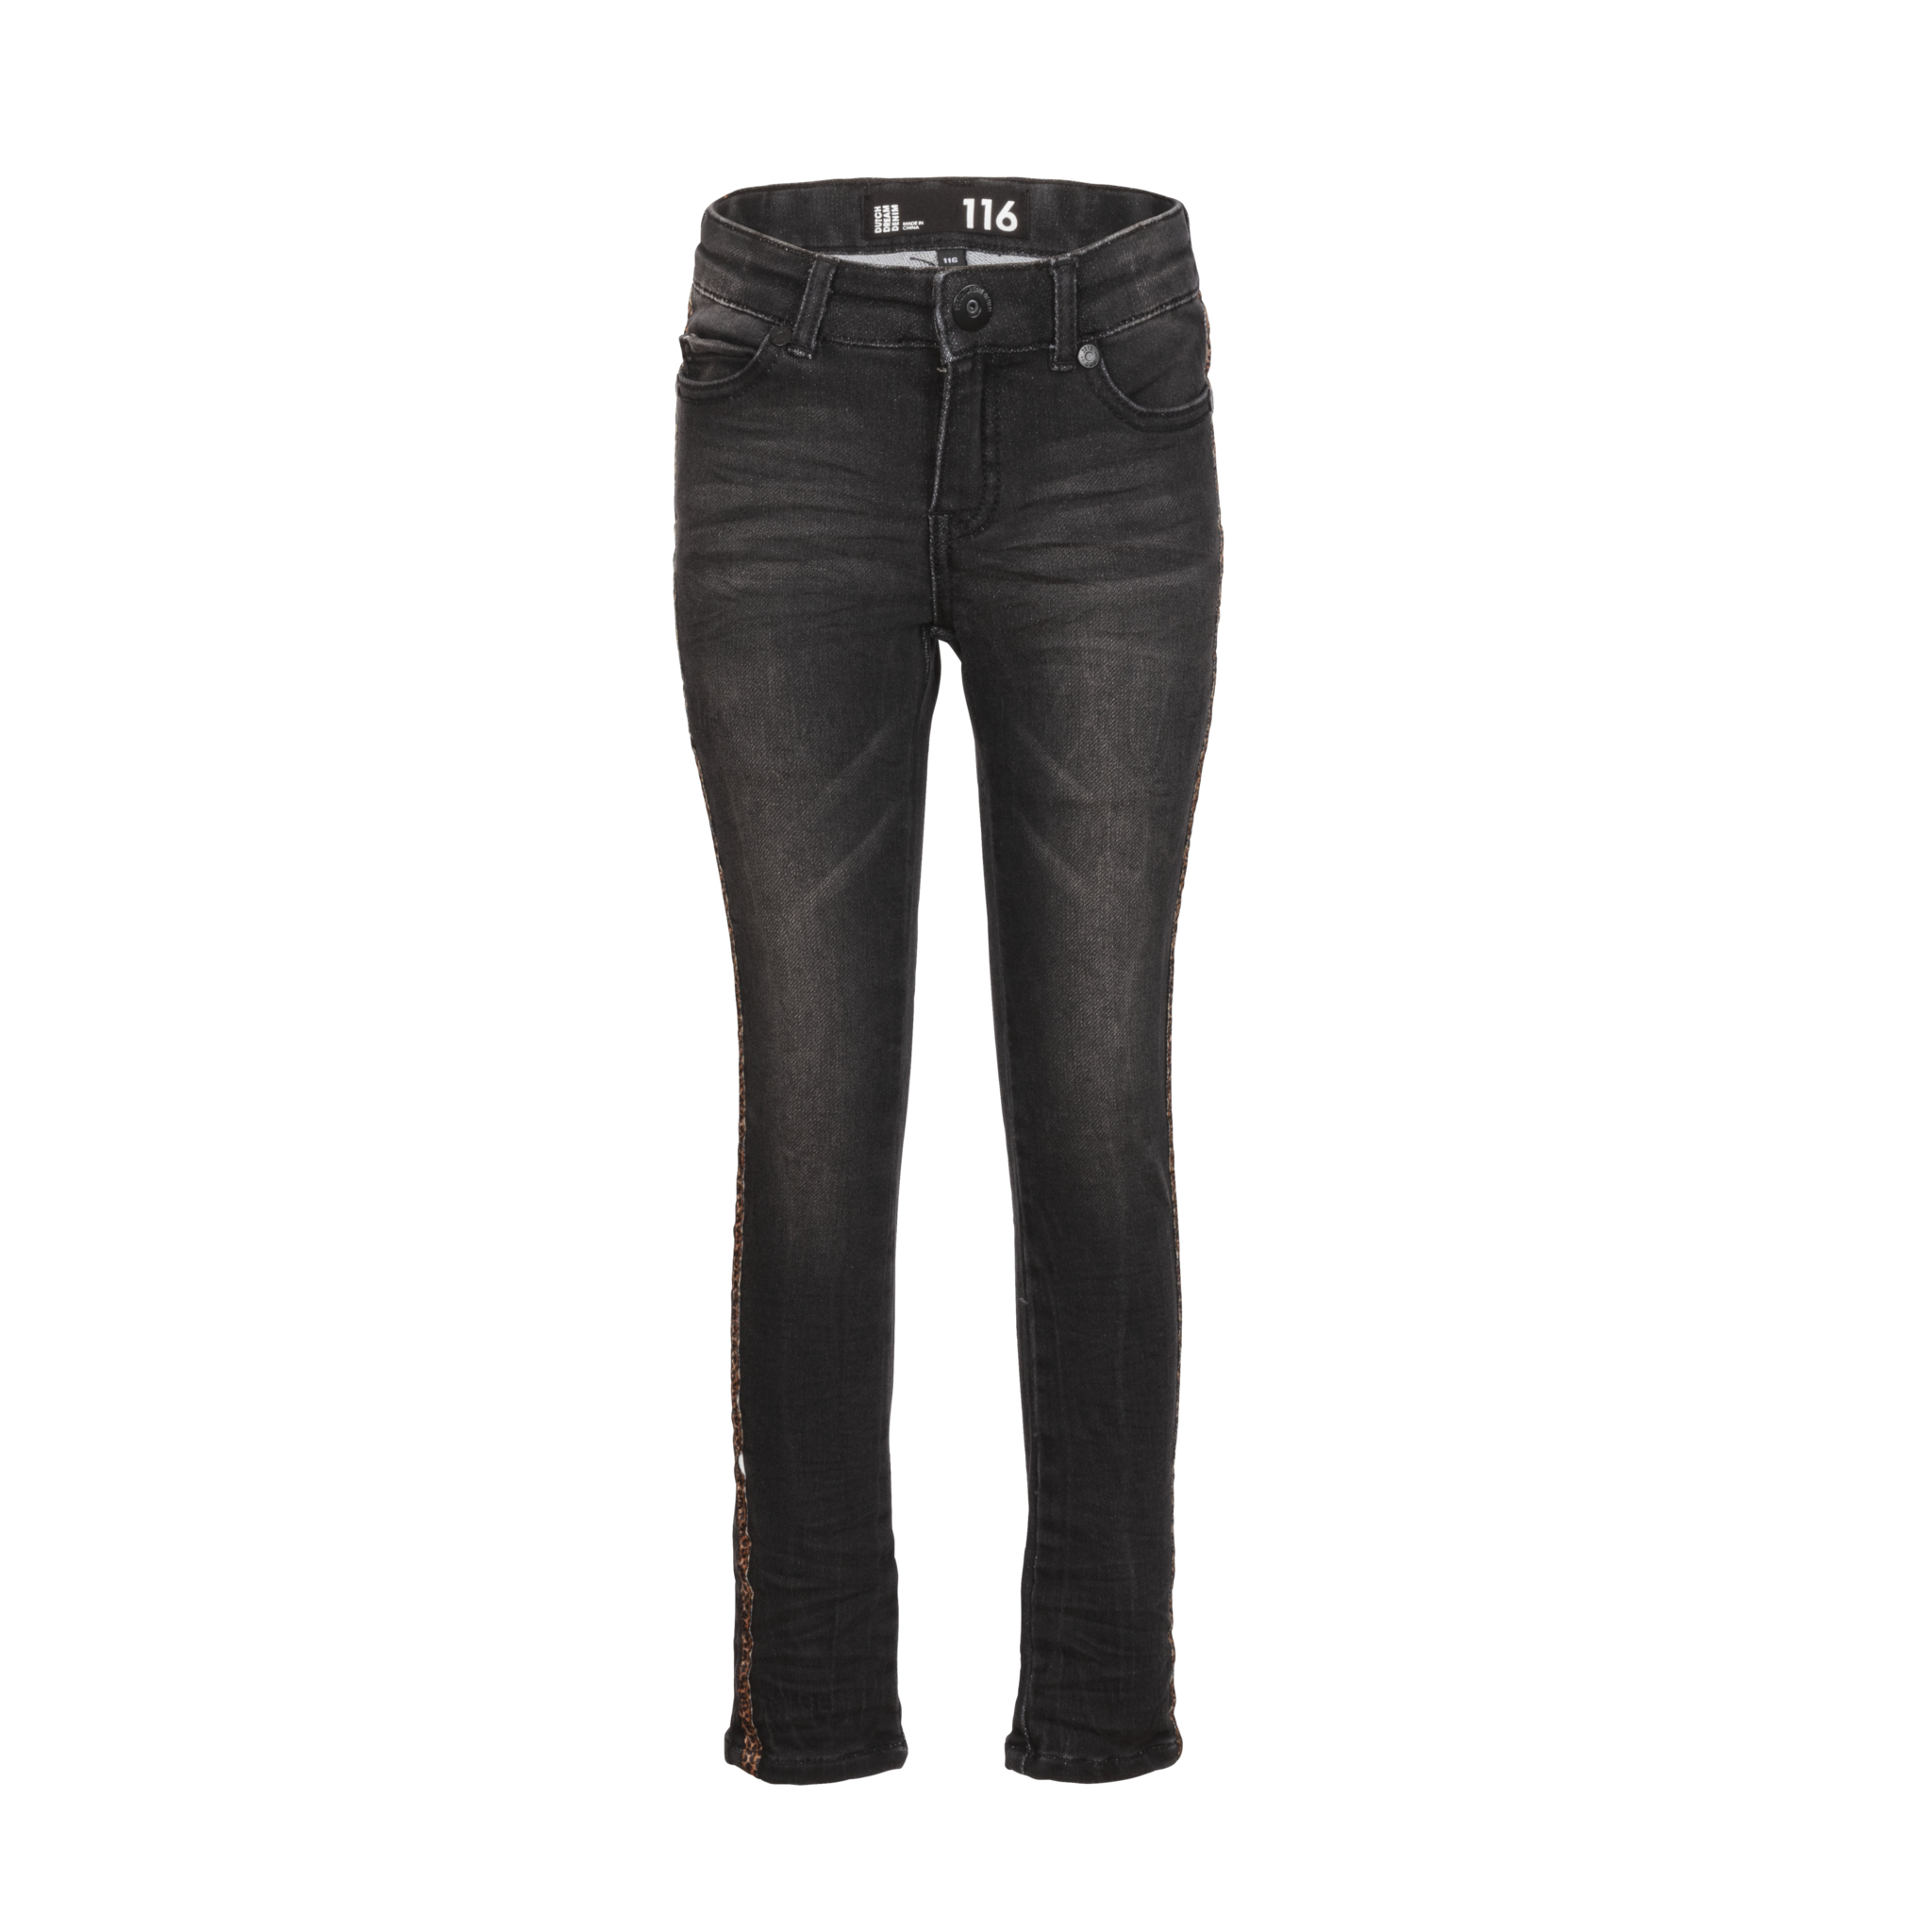 Dutch Dream Denim Dutch Dream Denim spijkerbroek Chumba